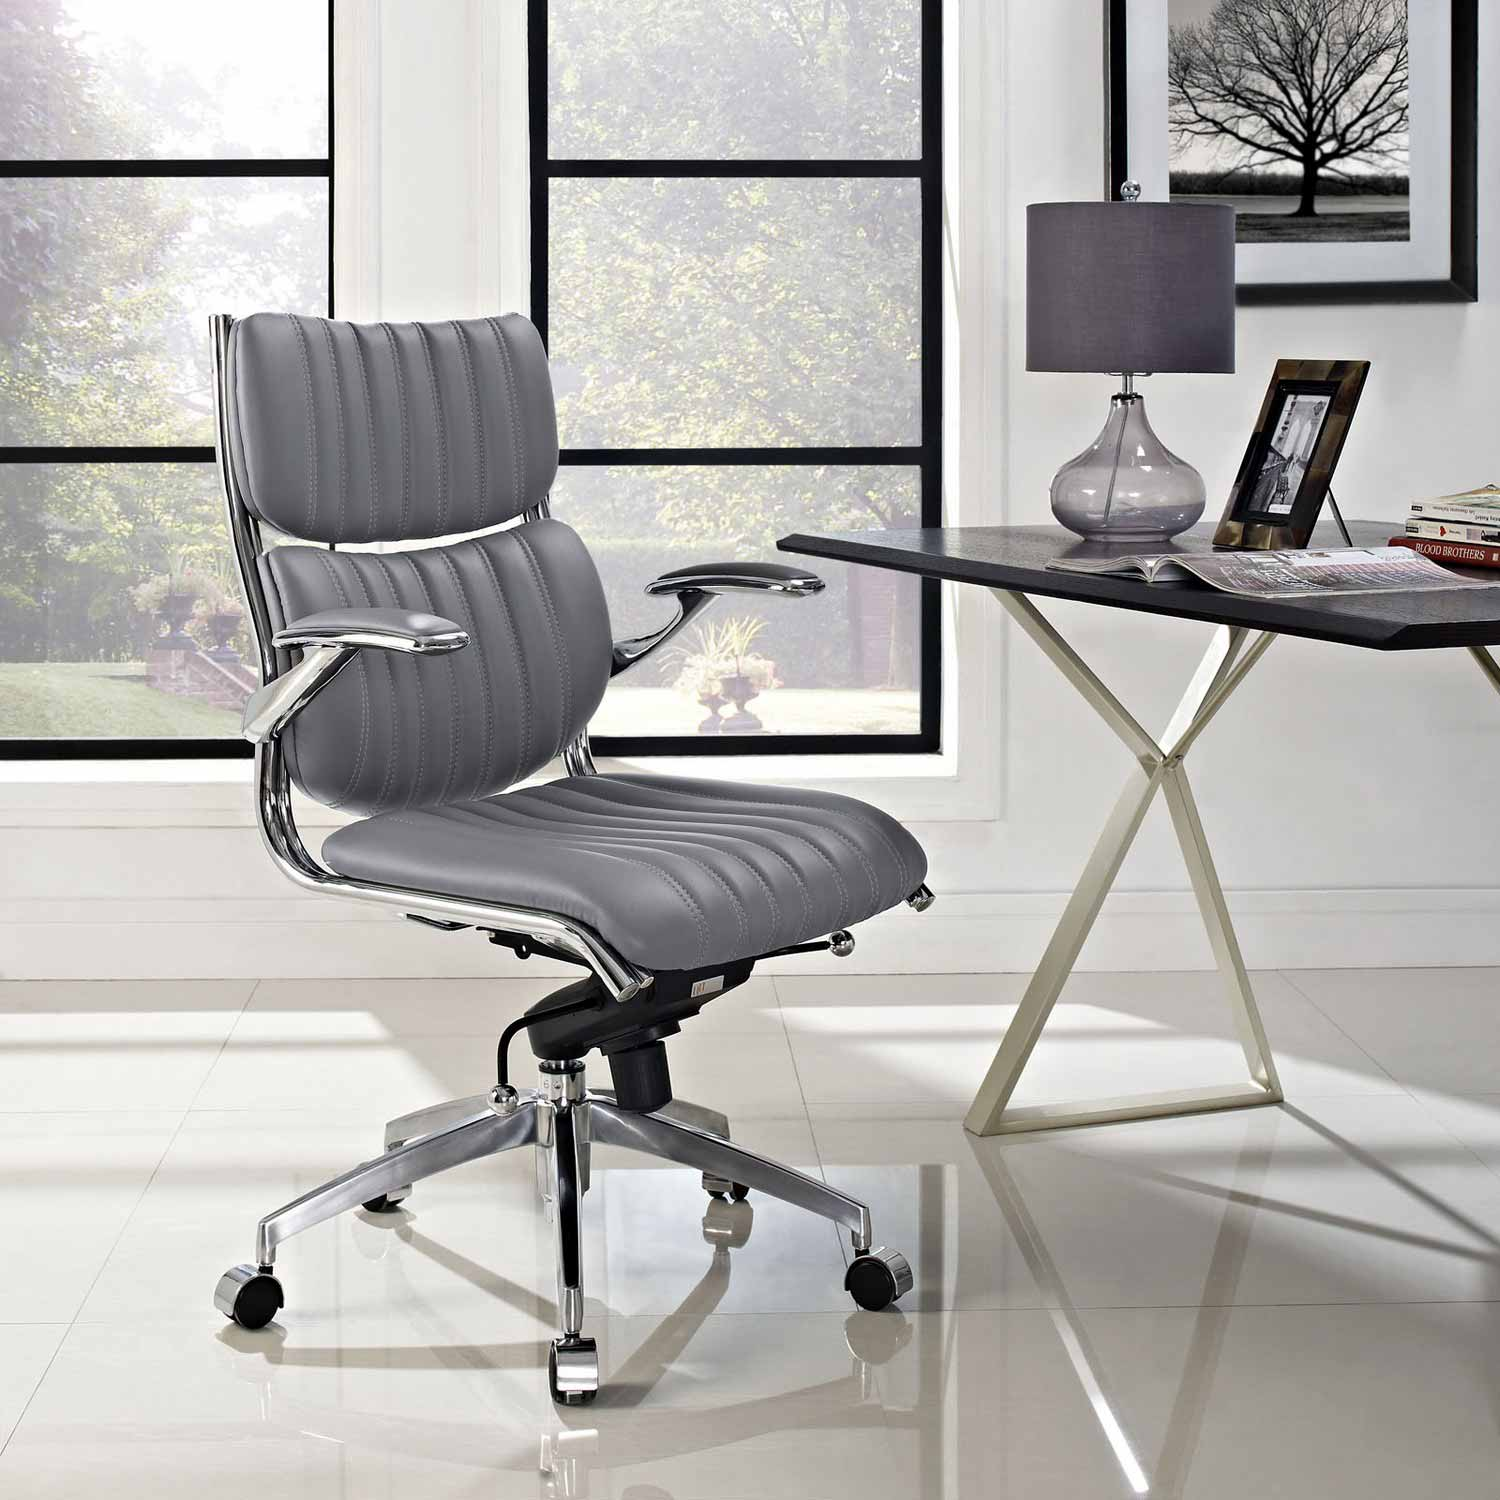 Modway Escape Mid Back fice Chair Gray MW EEI 1028 GRY at